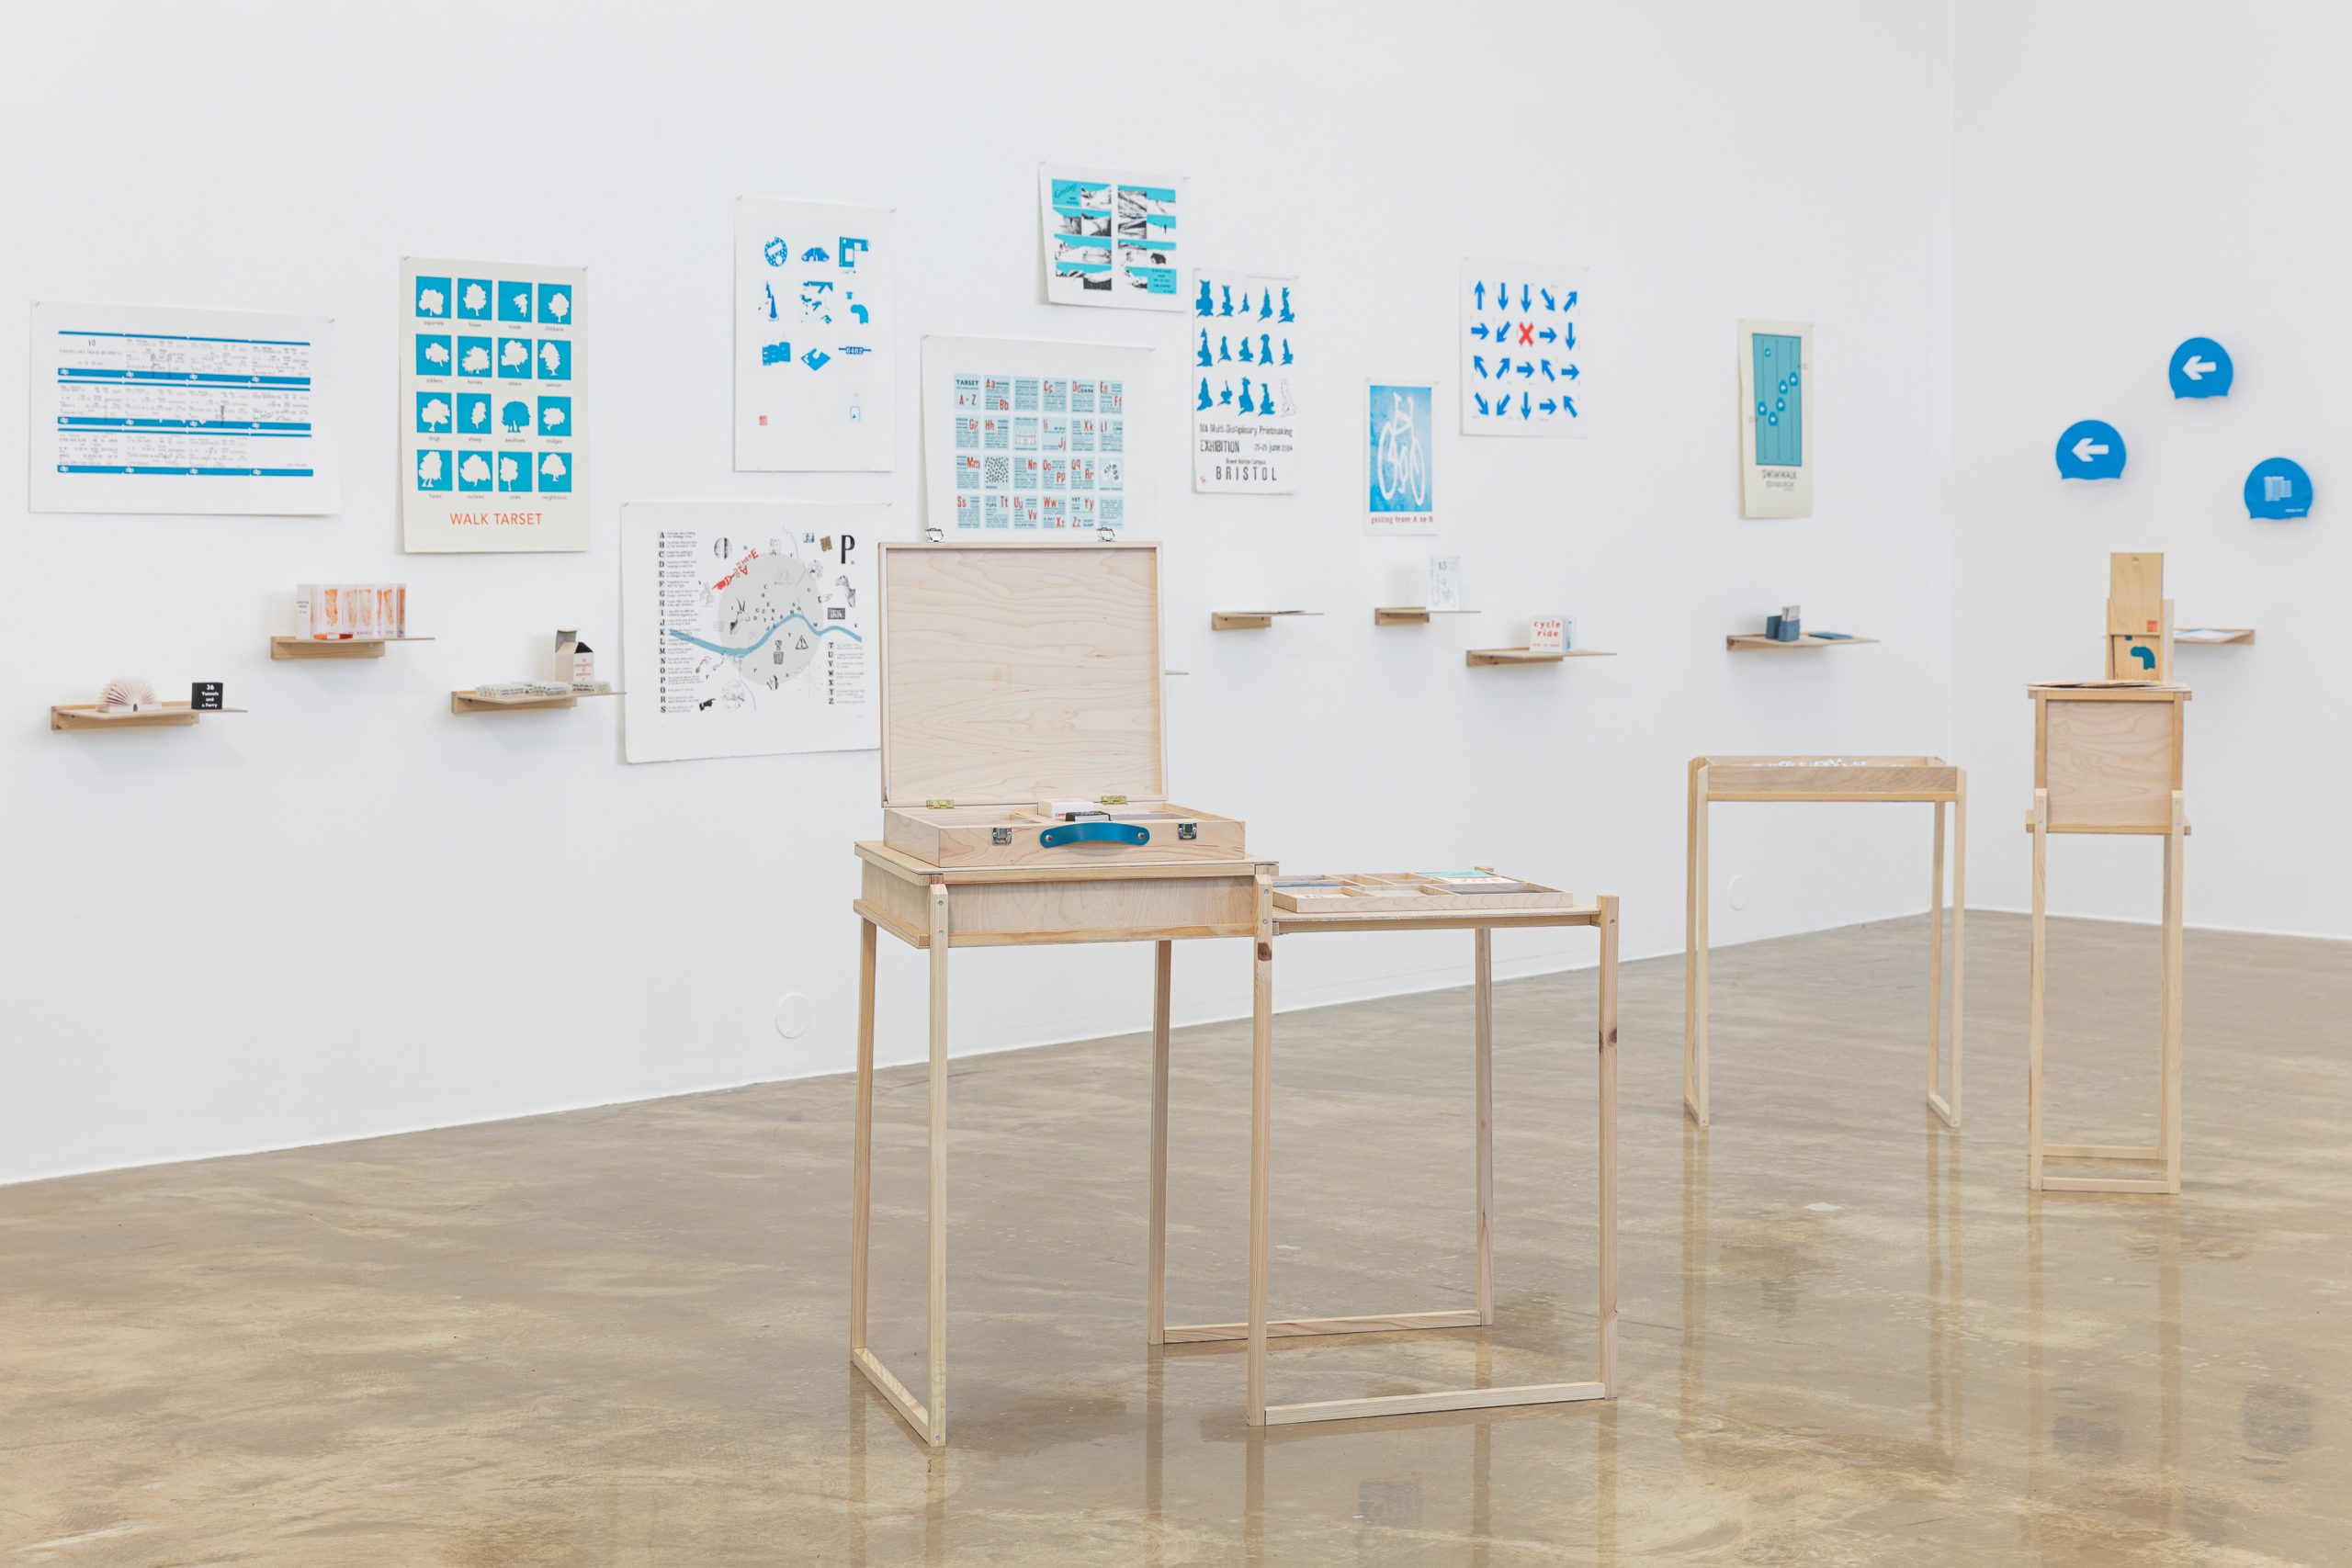 Image of a gallery installation, with a wooden briefcase sitting in the foreground, and an installation of prints in the background. The prints all consist of illustrations created with various shades of blue ink